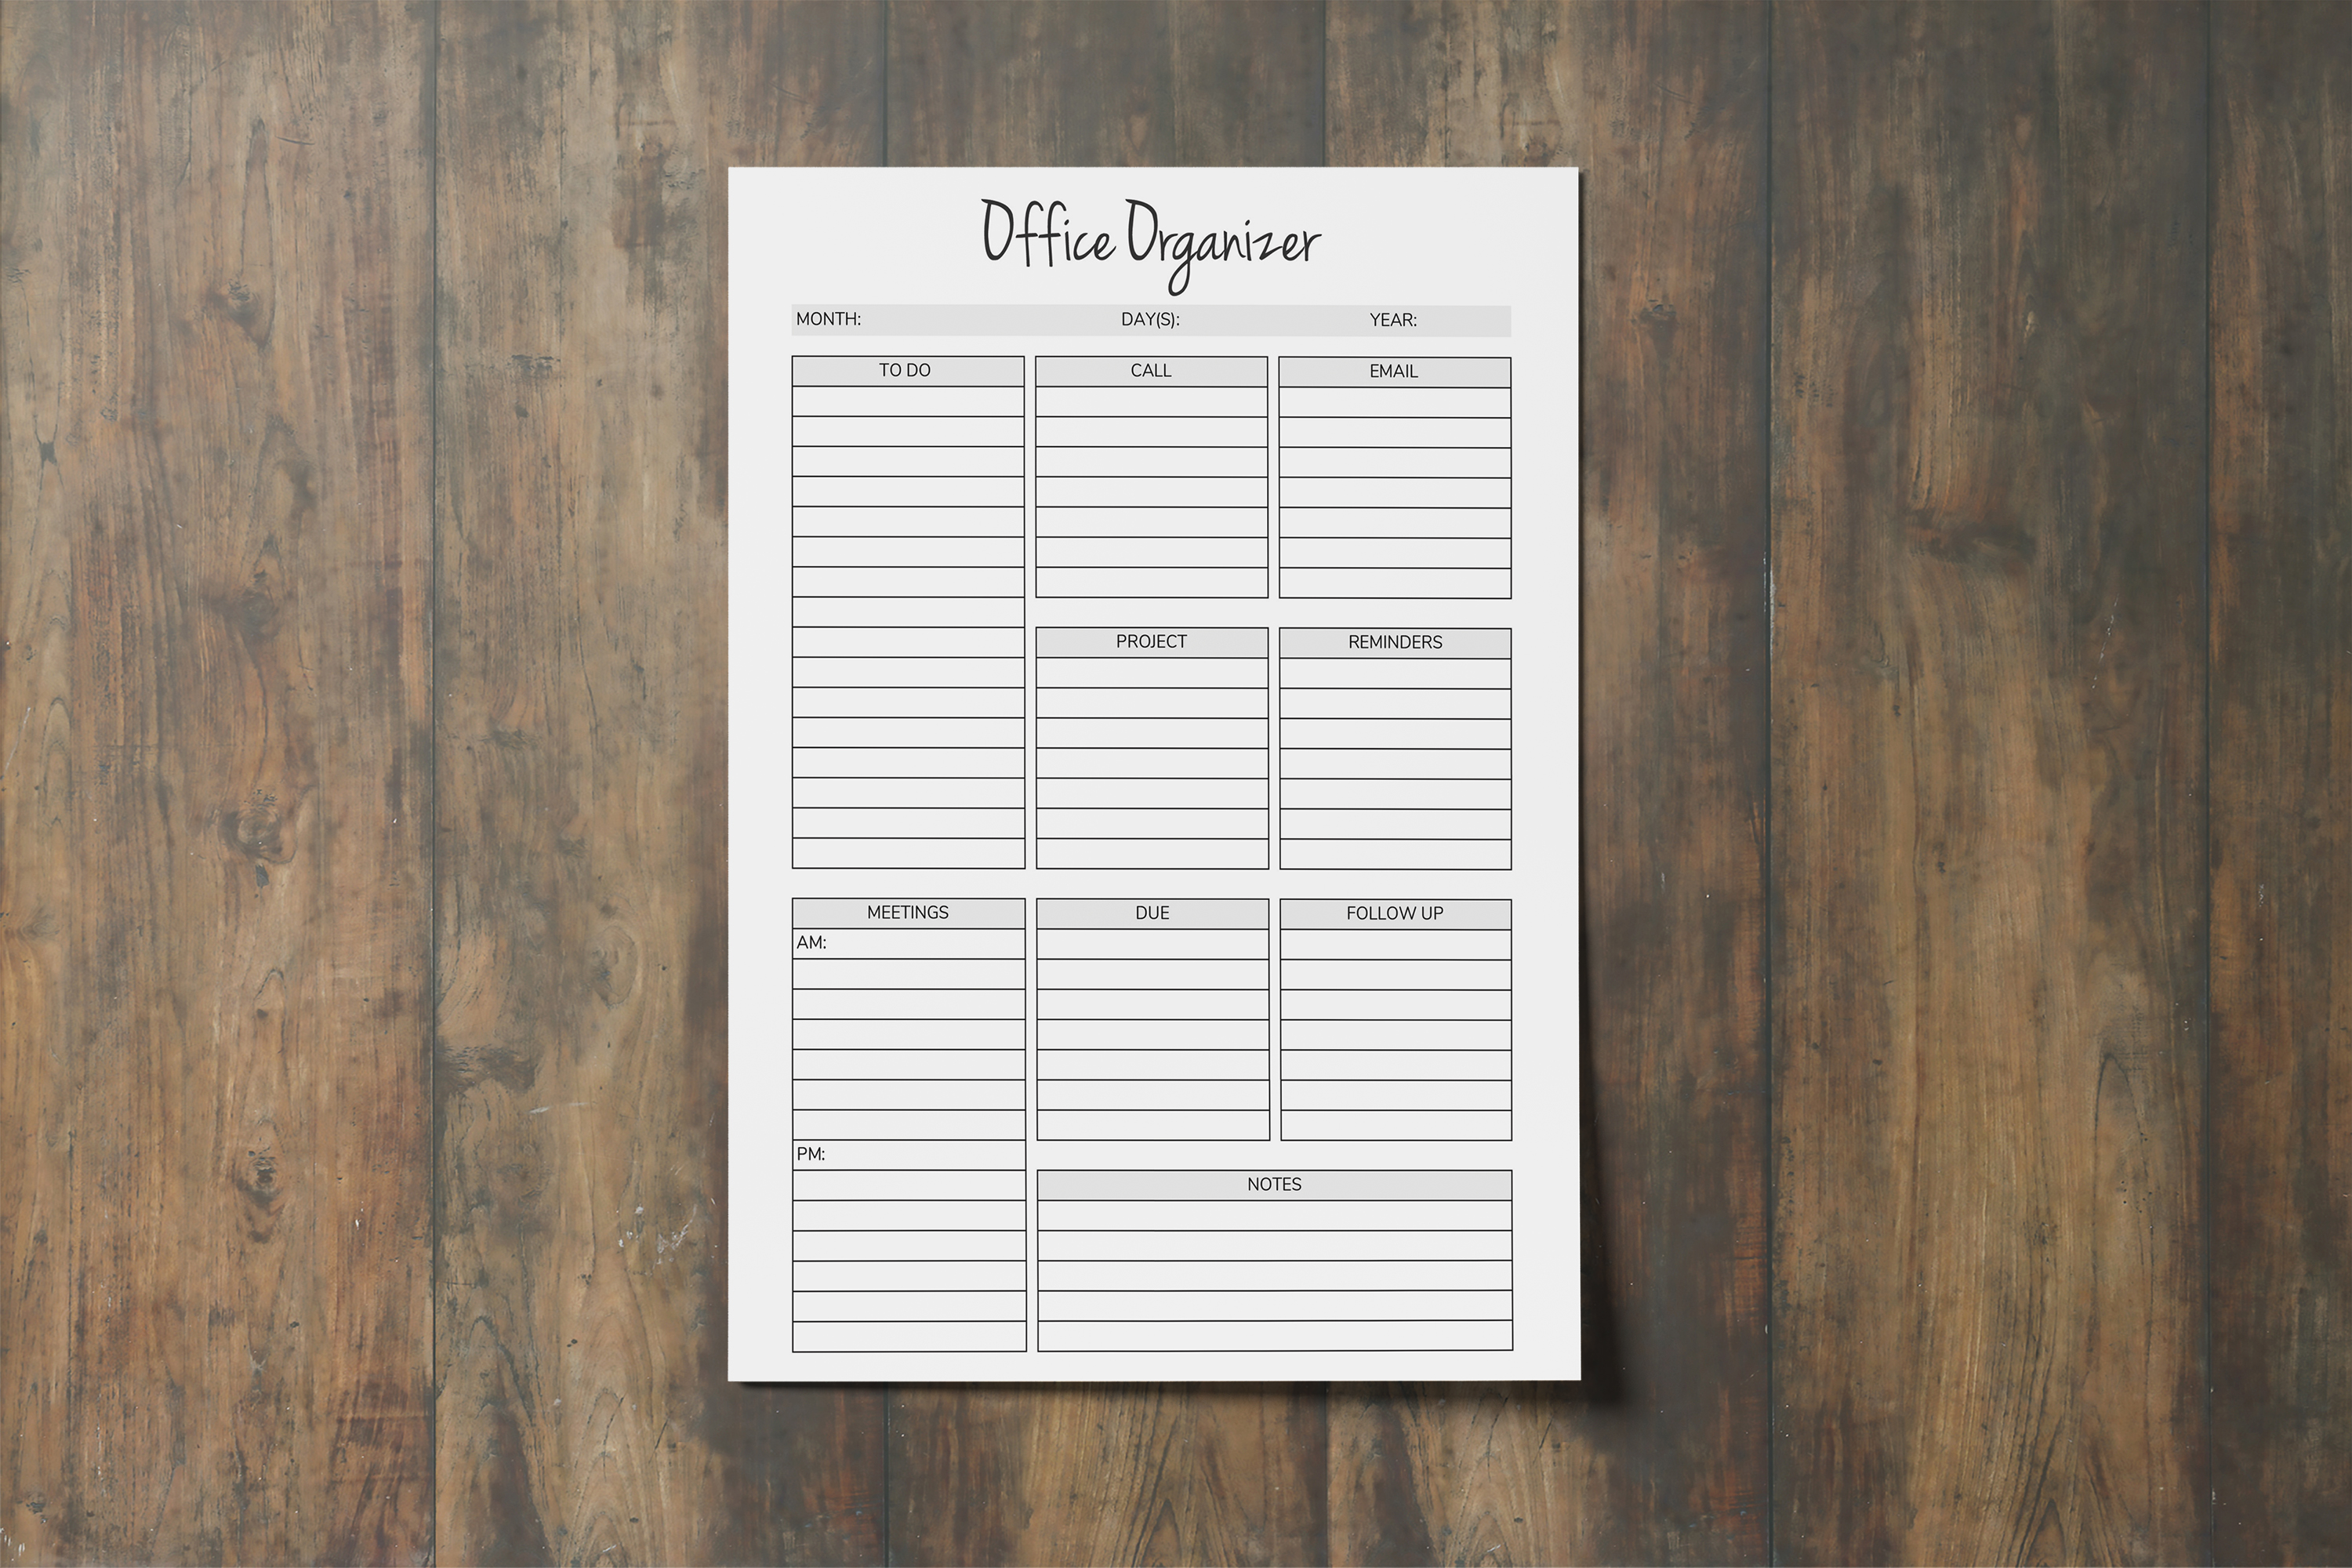 Office Organizer, Printable Planner Pages, Planner Organizer example image 2